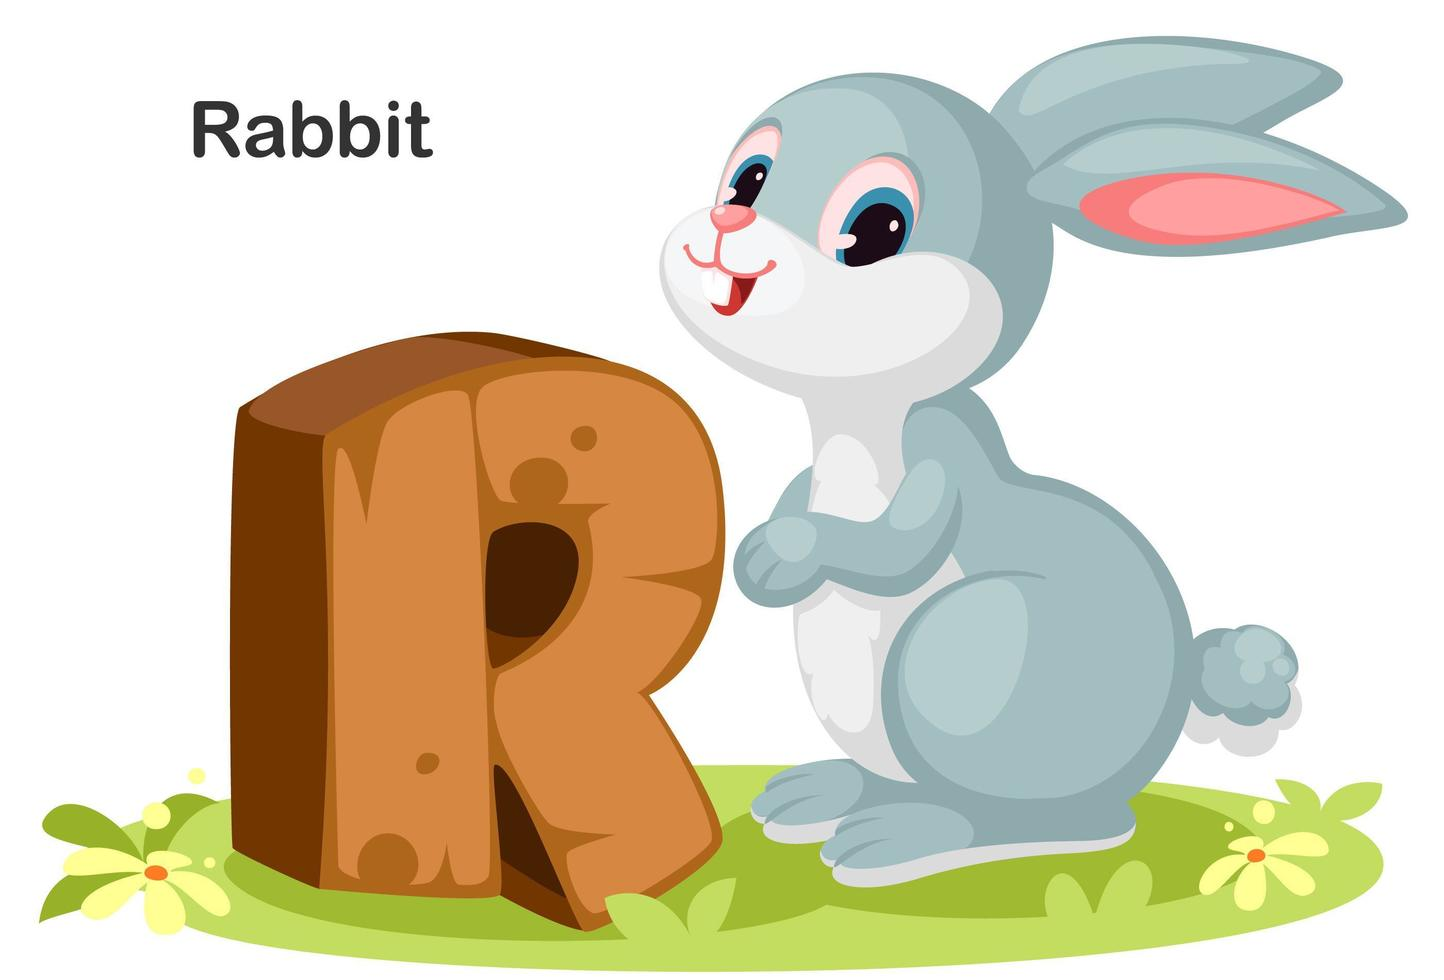 R for Rabbit vector